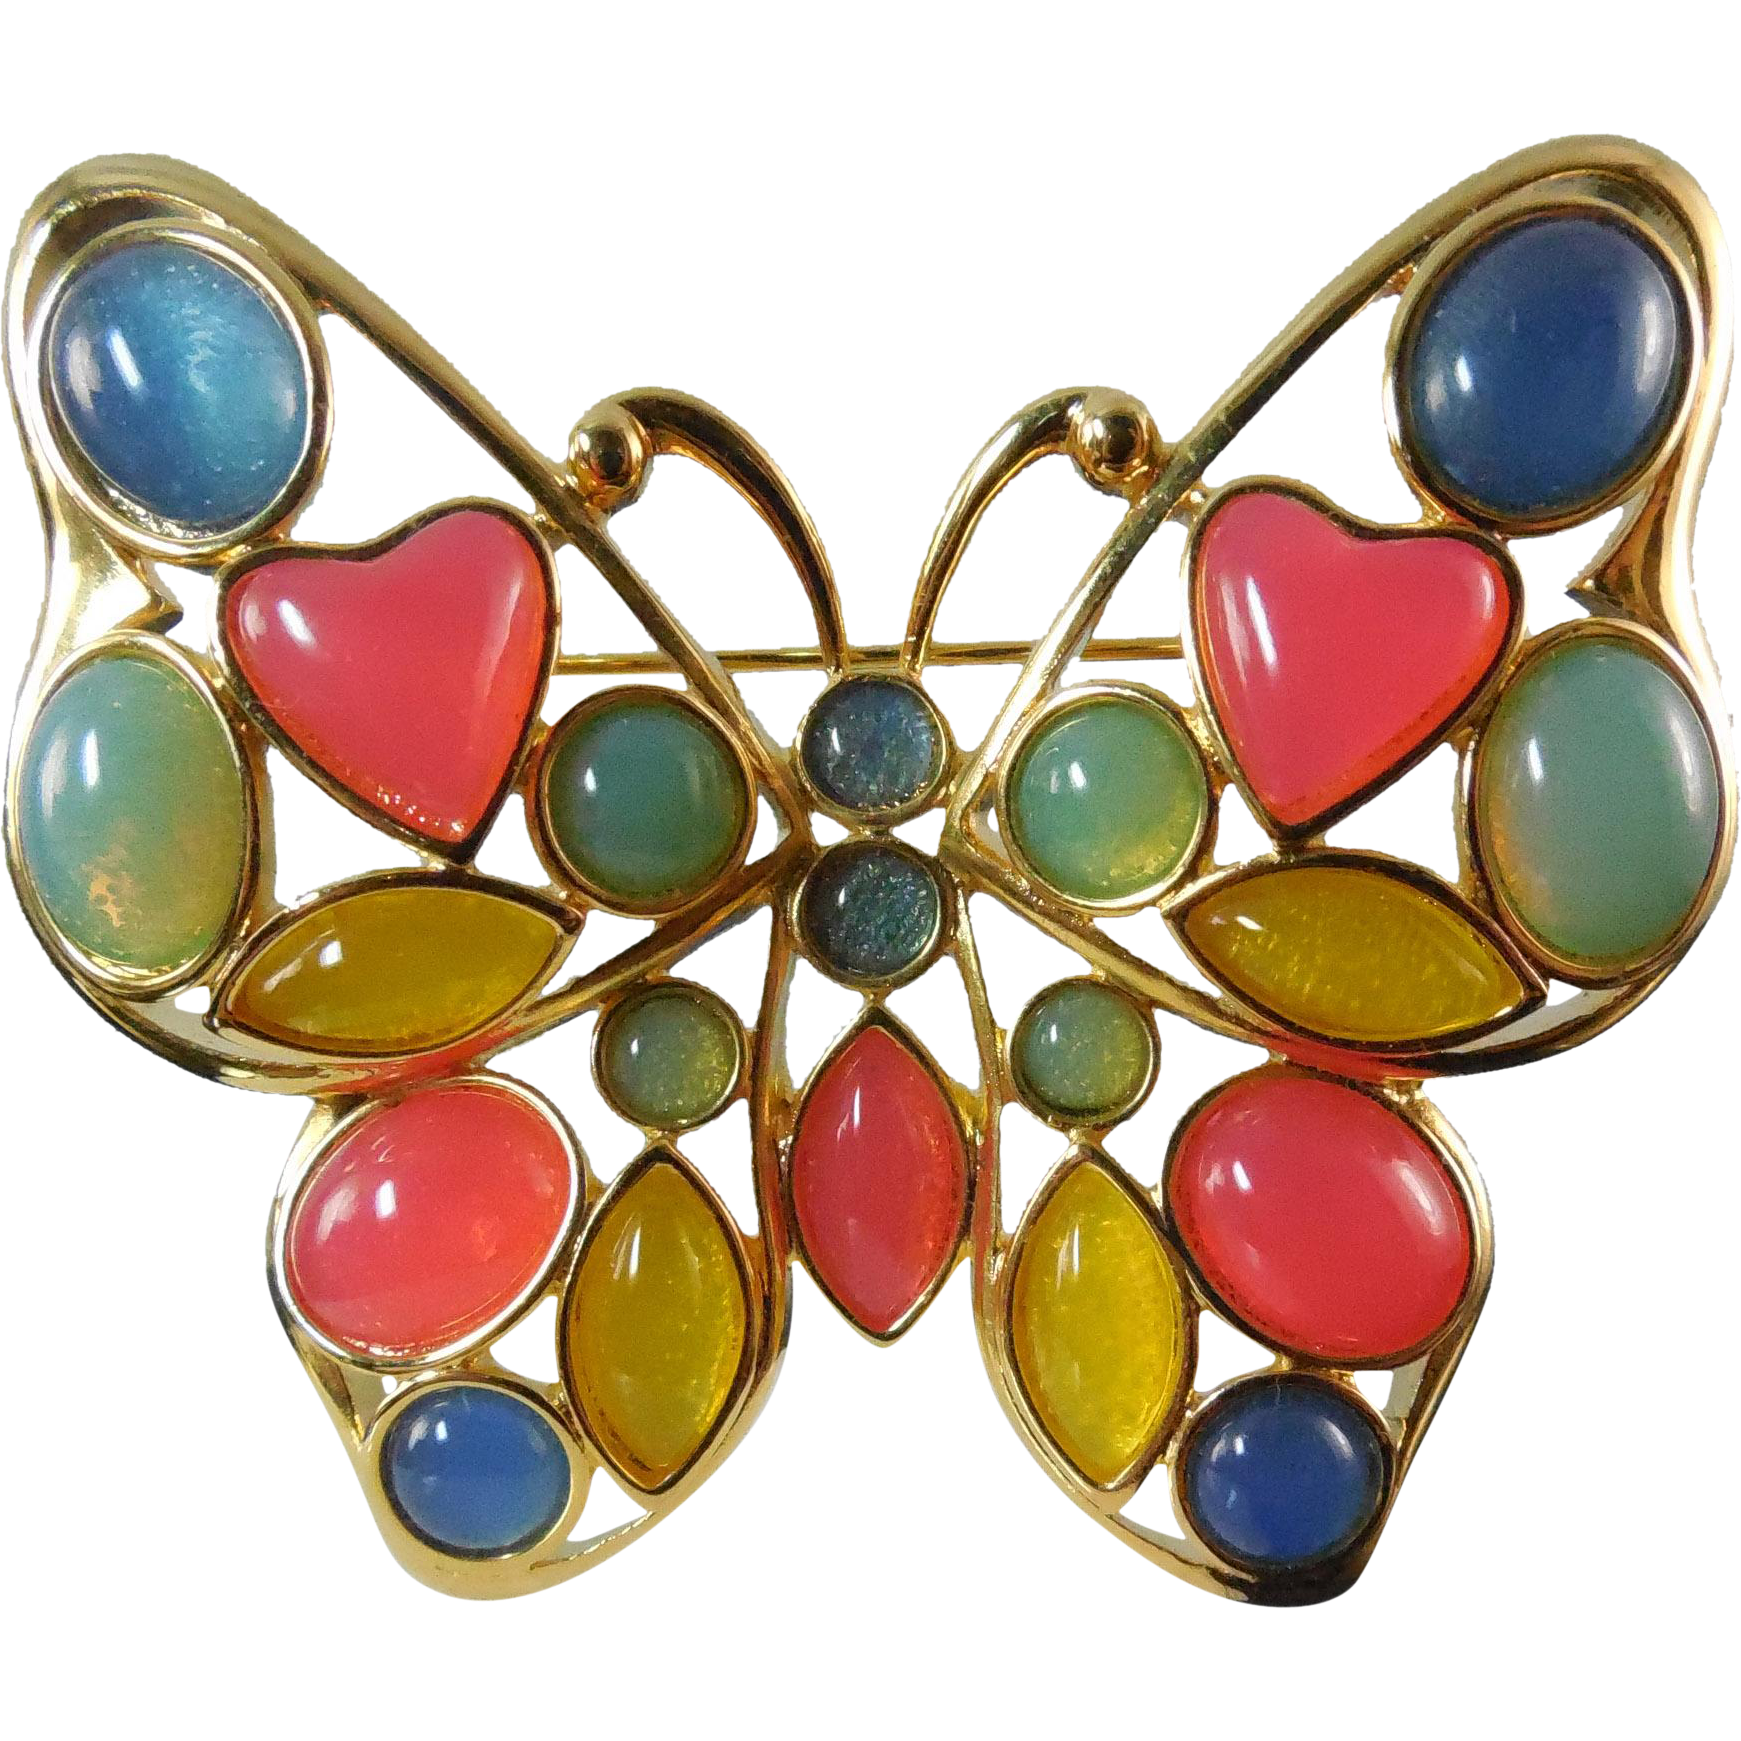 Signed Trifari TM Mosaic Lucite Butterfly Brooch - Circa 1980s